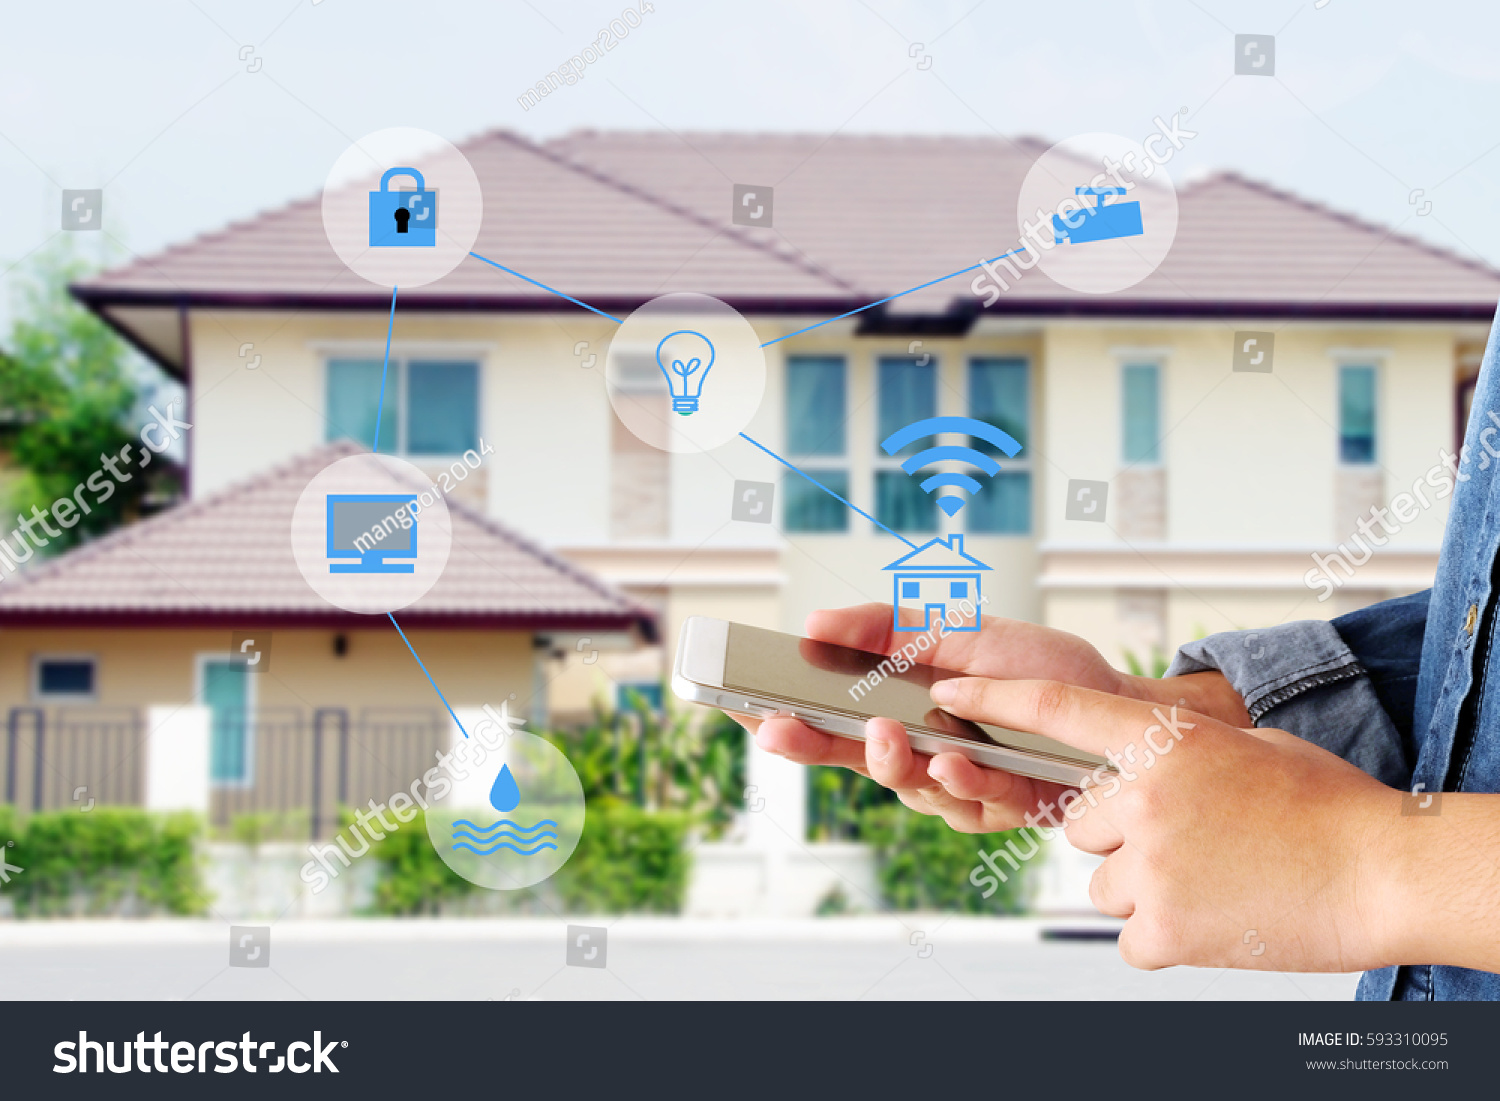 Smart home secured automation with wifi technology, Hand using smartphone as house mobile monitor such as camera, computer, door and light, internet of things, people and smart home concept  #593310095